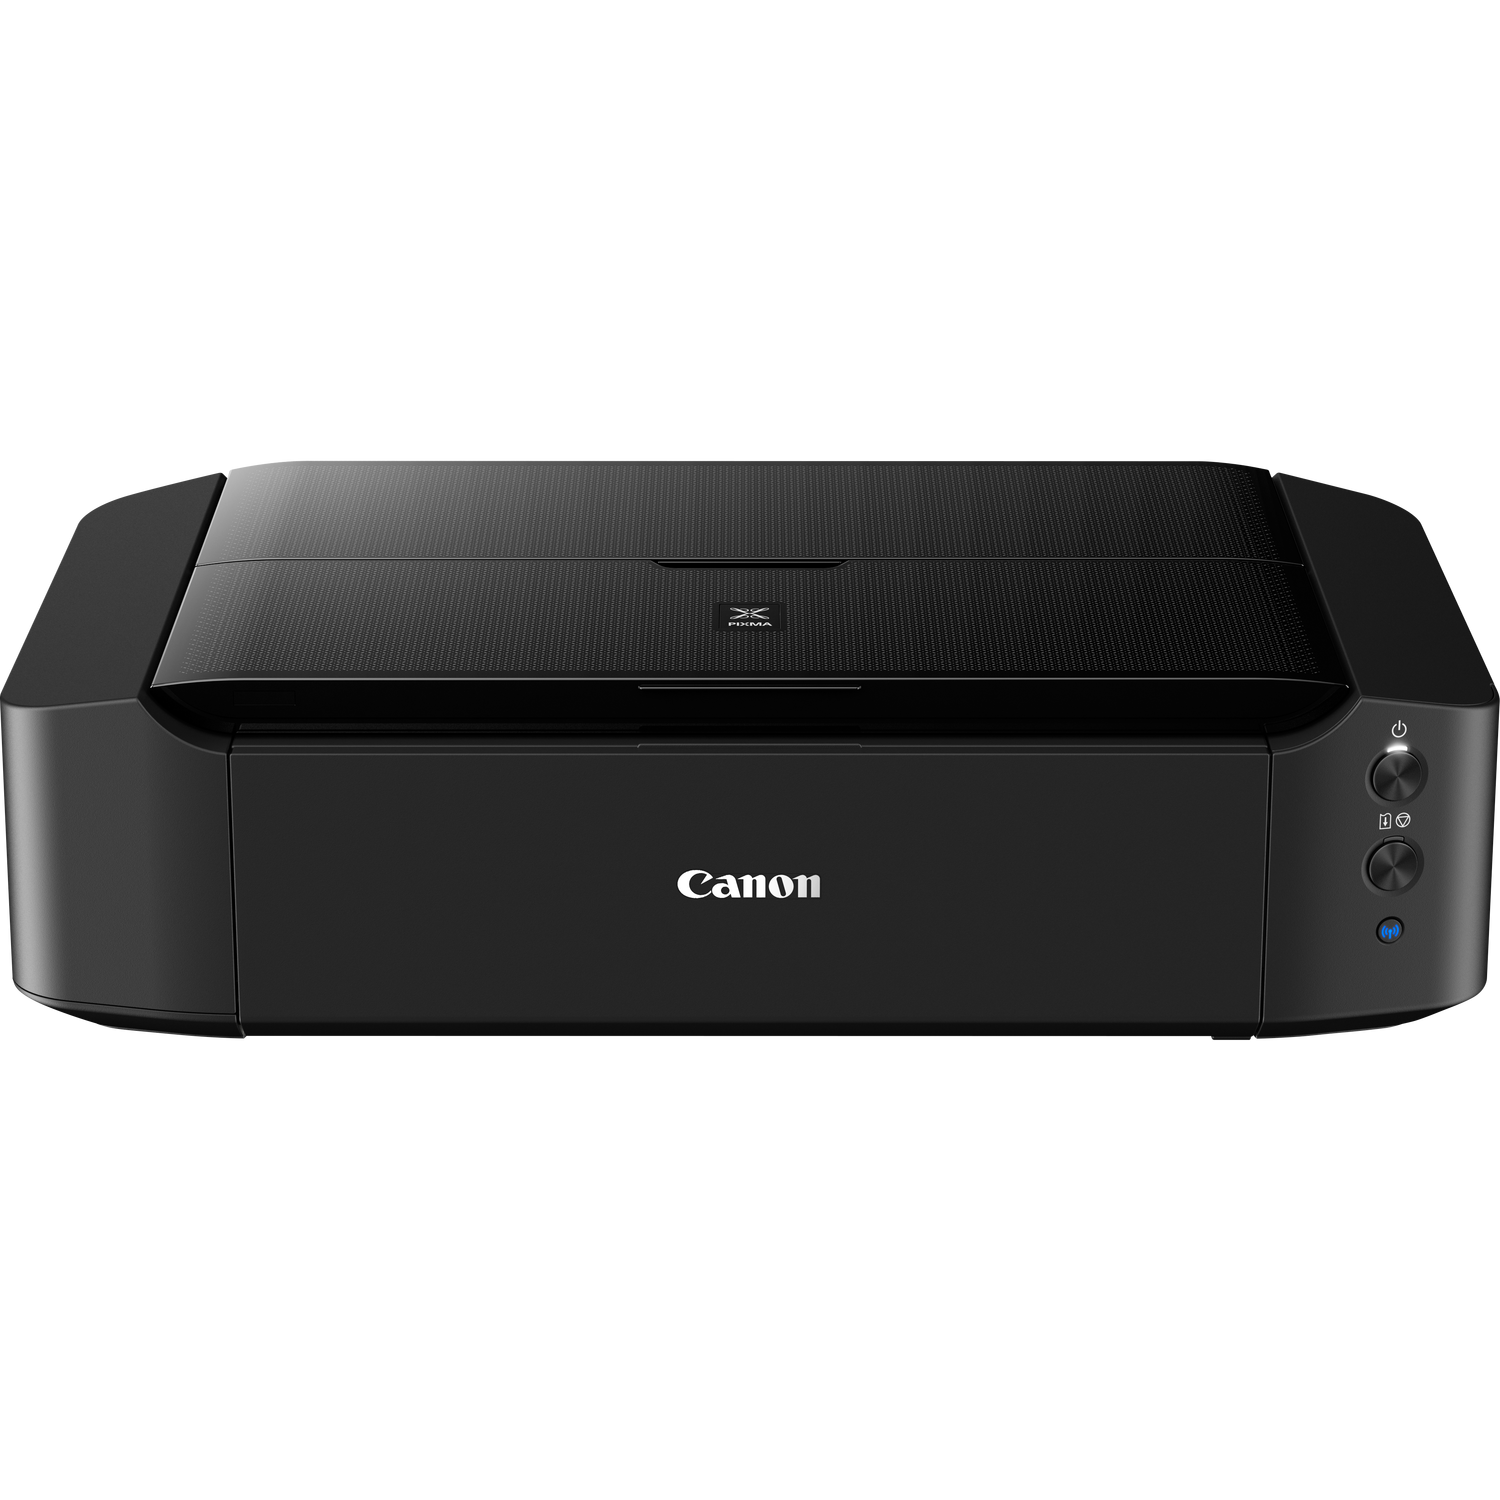 canon pixma ip8750 in imprimantes wifi canon belgium store. Black Bedroom Furniture Sets. Home Design Ideas